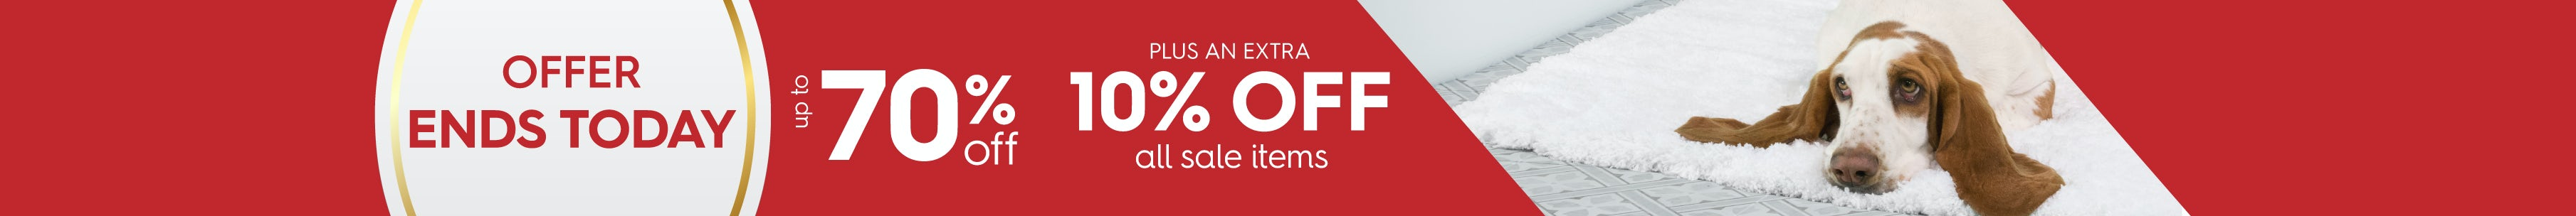 Up to 70% off Big Easter Sale